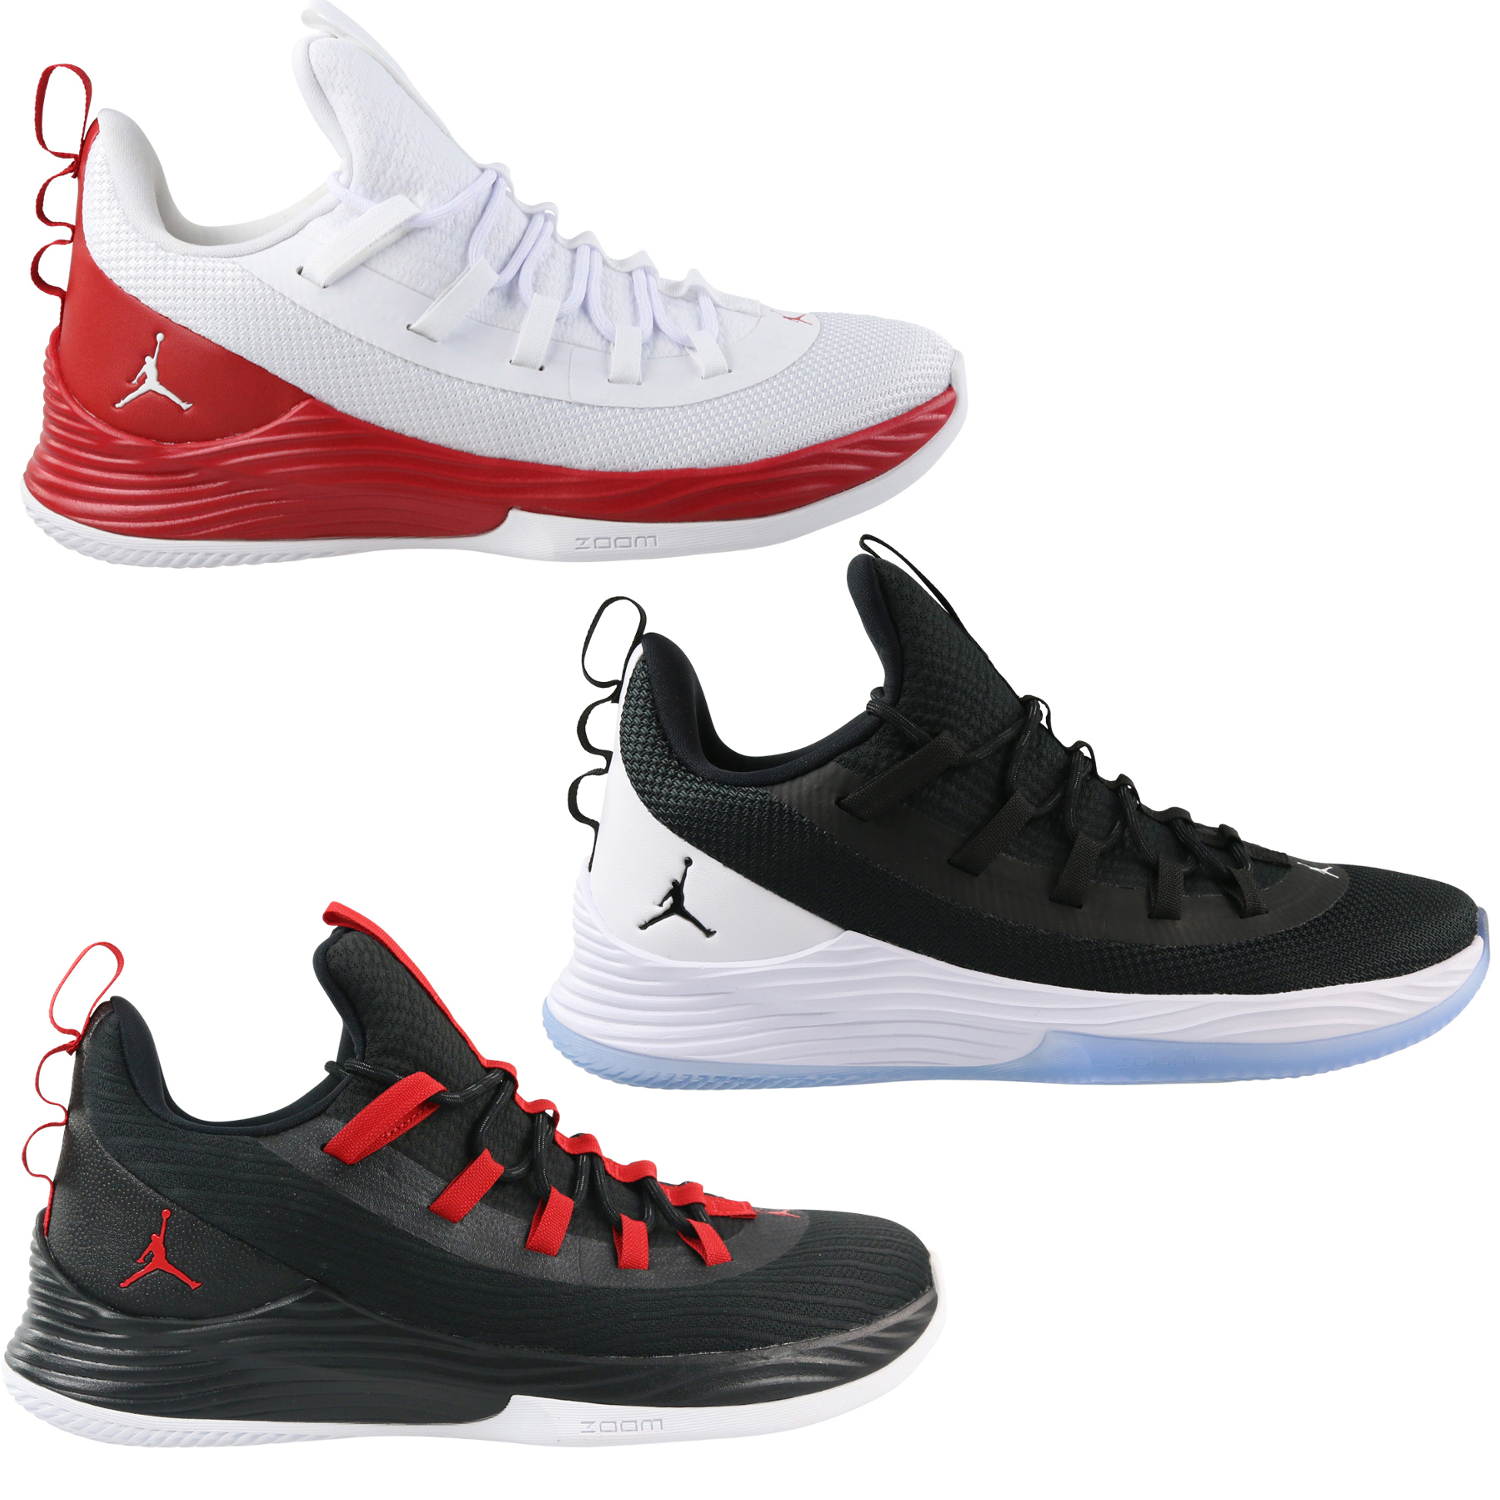 more photos 12159 ffbd8 Nike Jordan Ultra Fly 2 Low Basketballschuhe Herren Sneaker